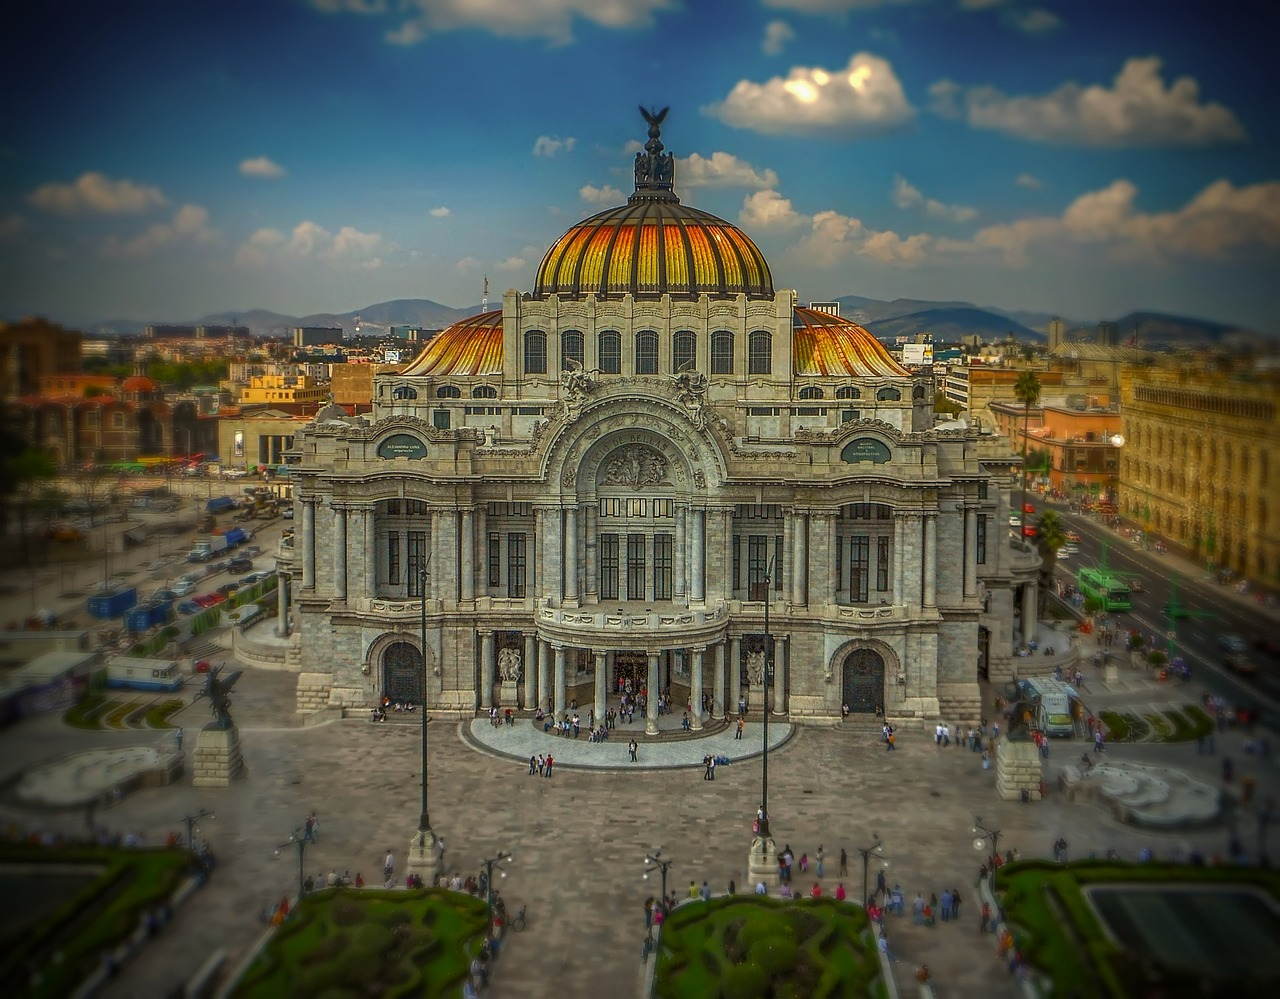 Travel contests march 29 2017 mexico city tokyo for Vacation to mexico city